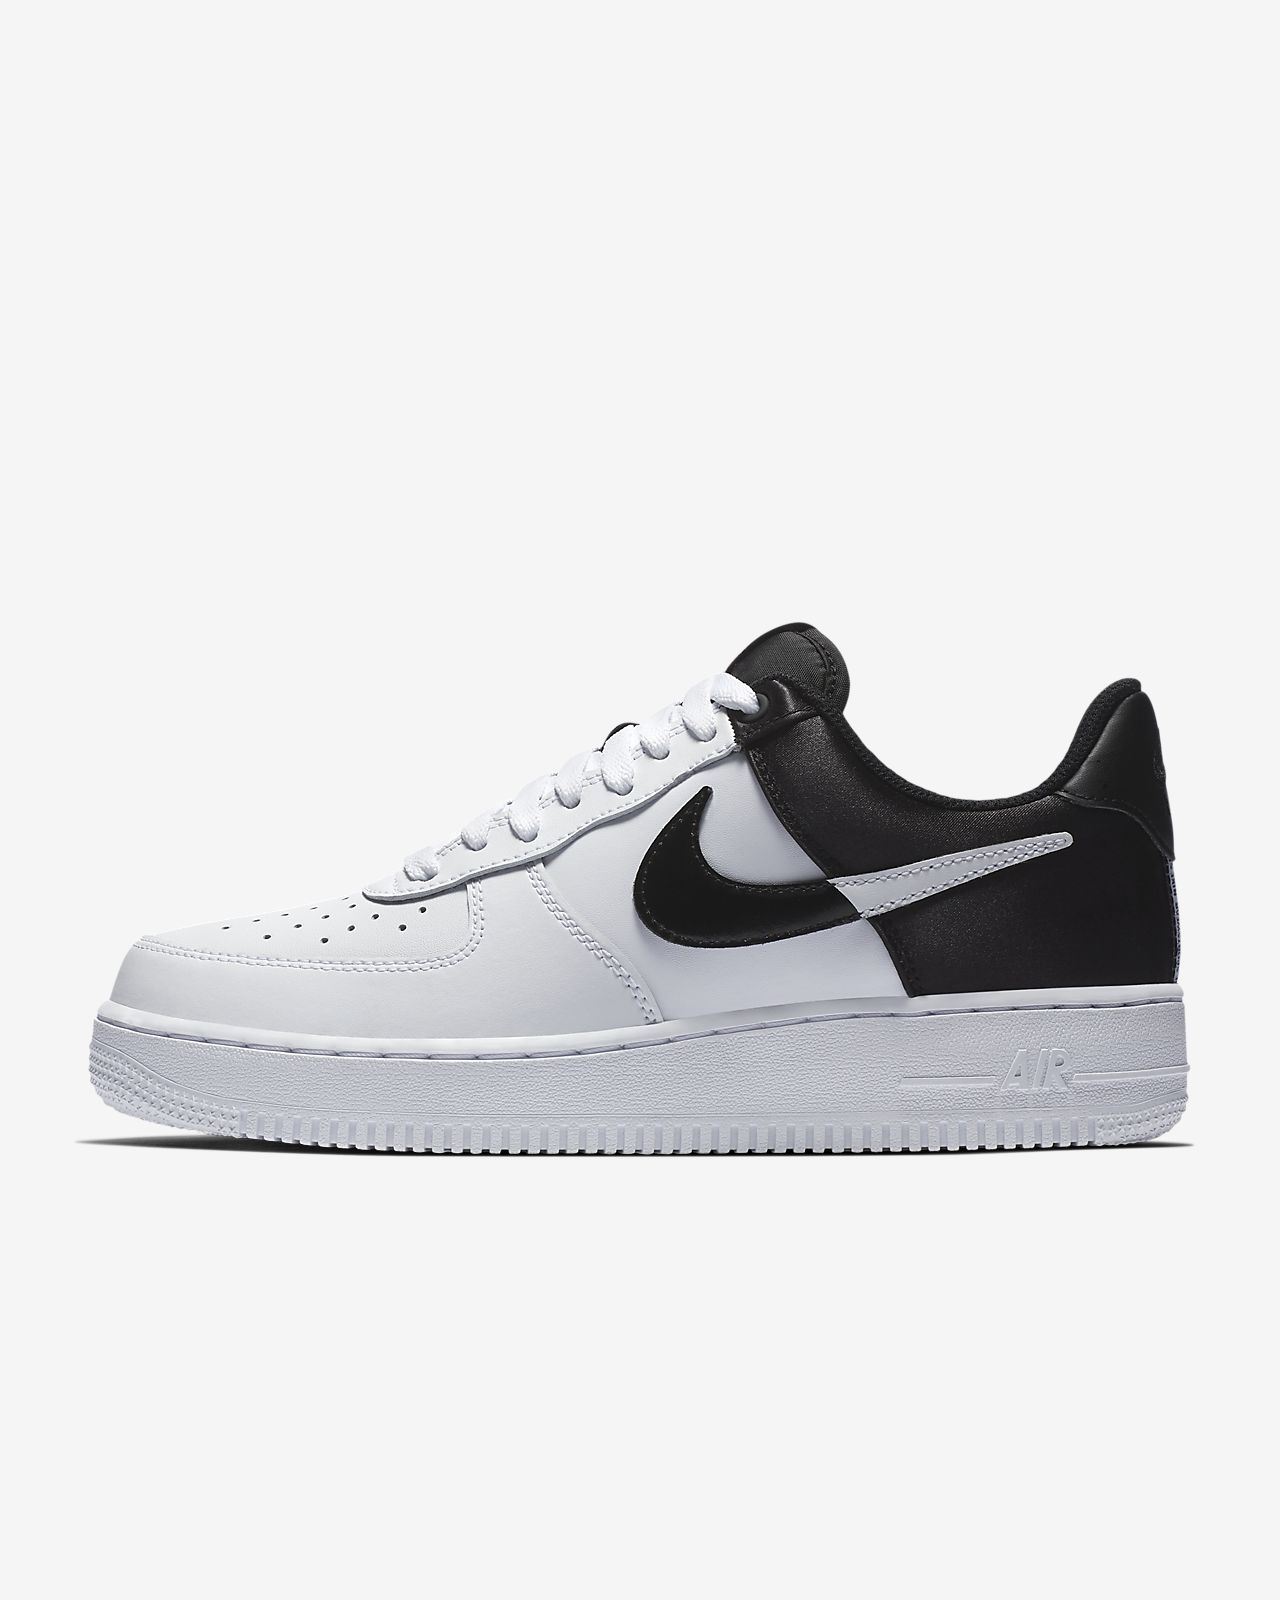 NIKE Official]Nike Air Force 1 NBA Low Shoe.Online store (mail